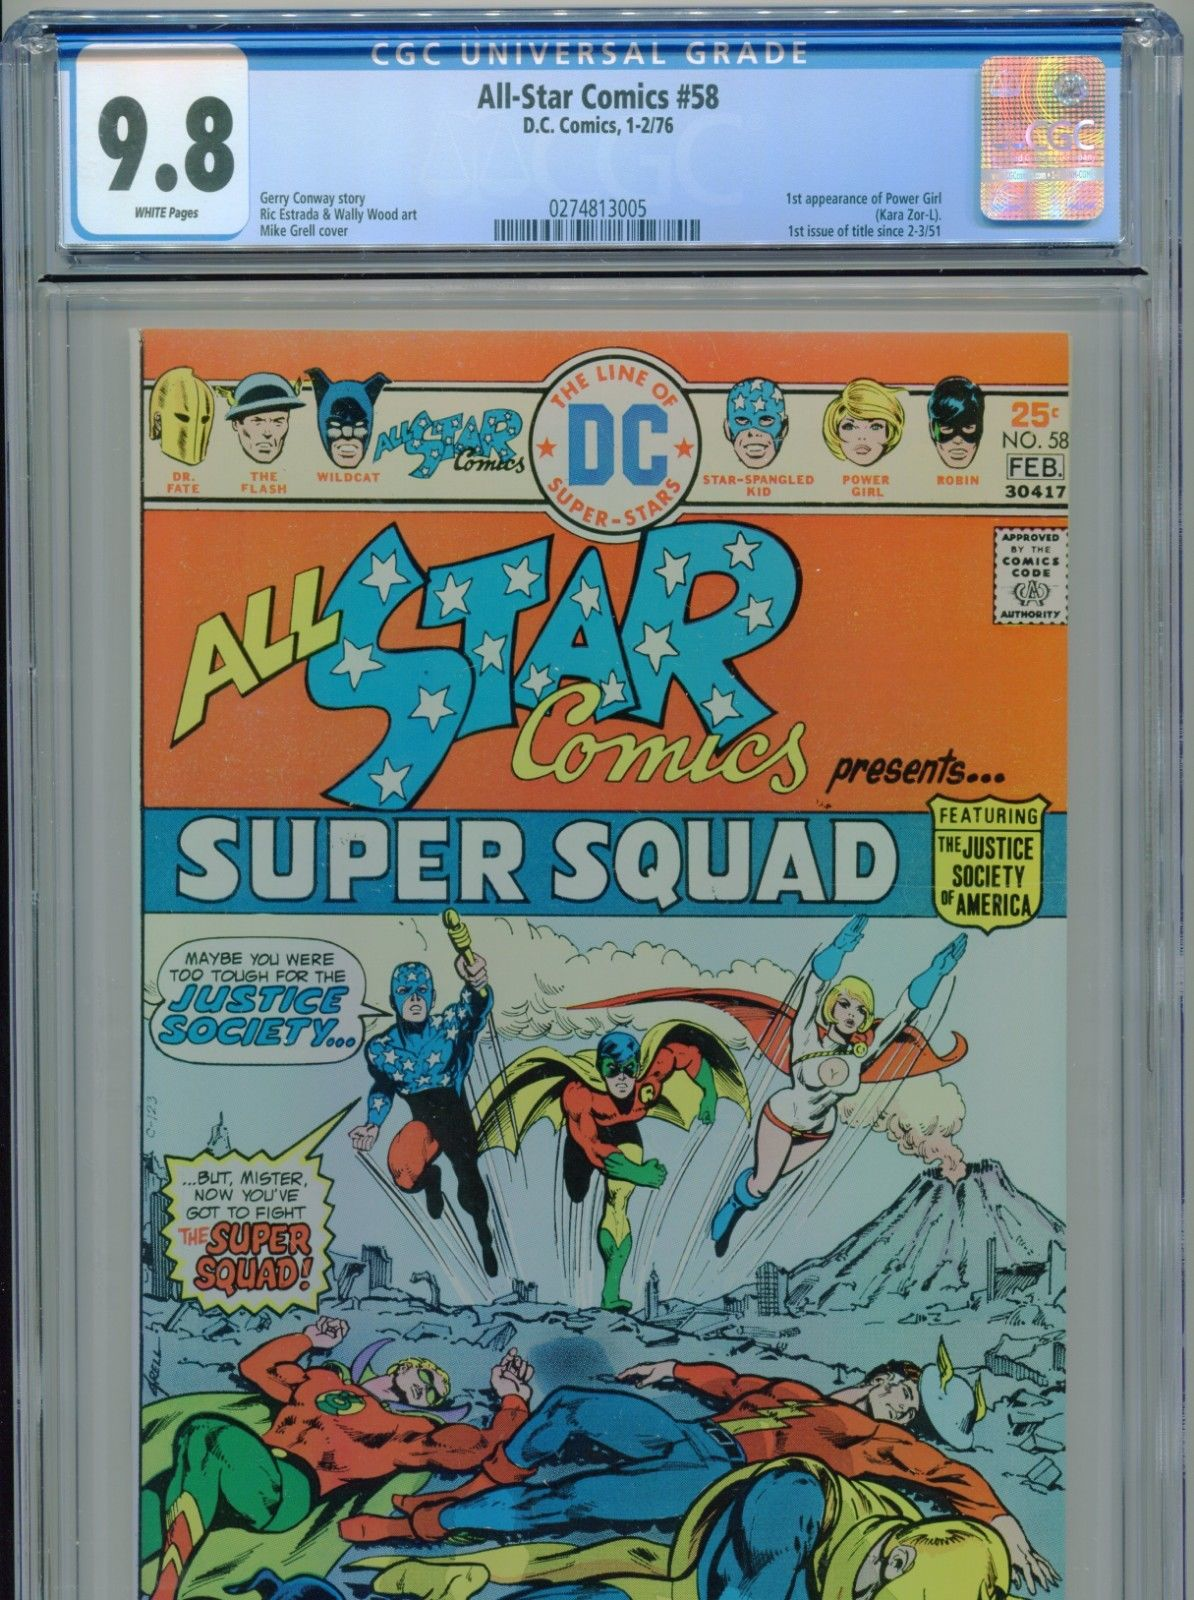 1976 DC ALL-STAR COMICS #58 1ST APPEARANCE POWER GIRL CGC 9.8 WHITE PAGES